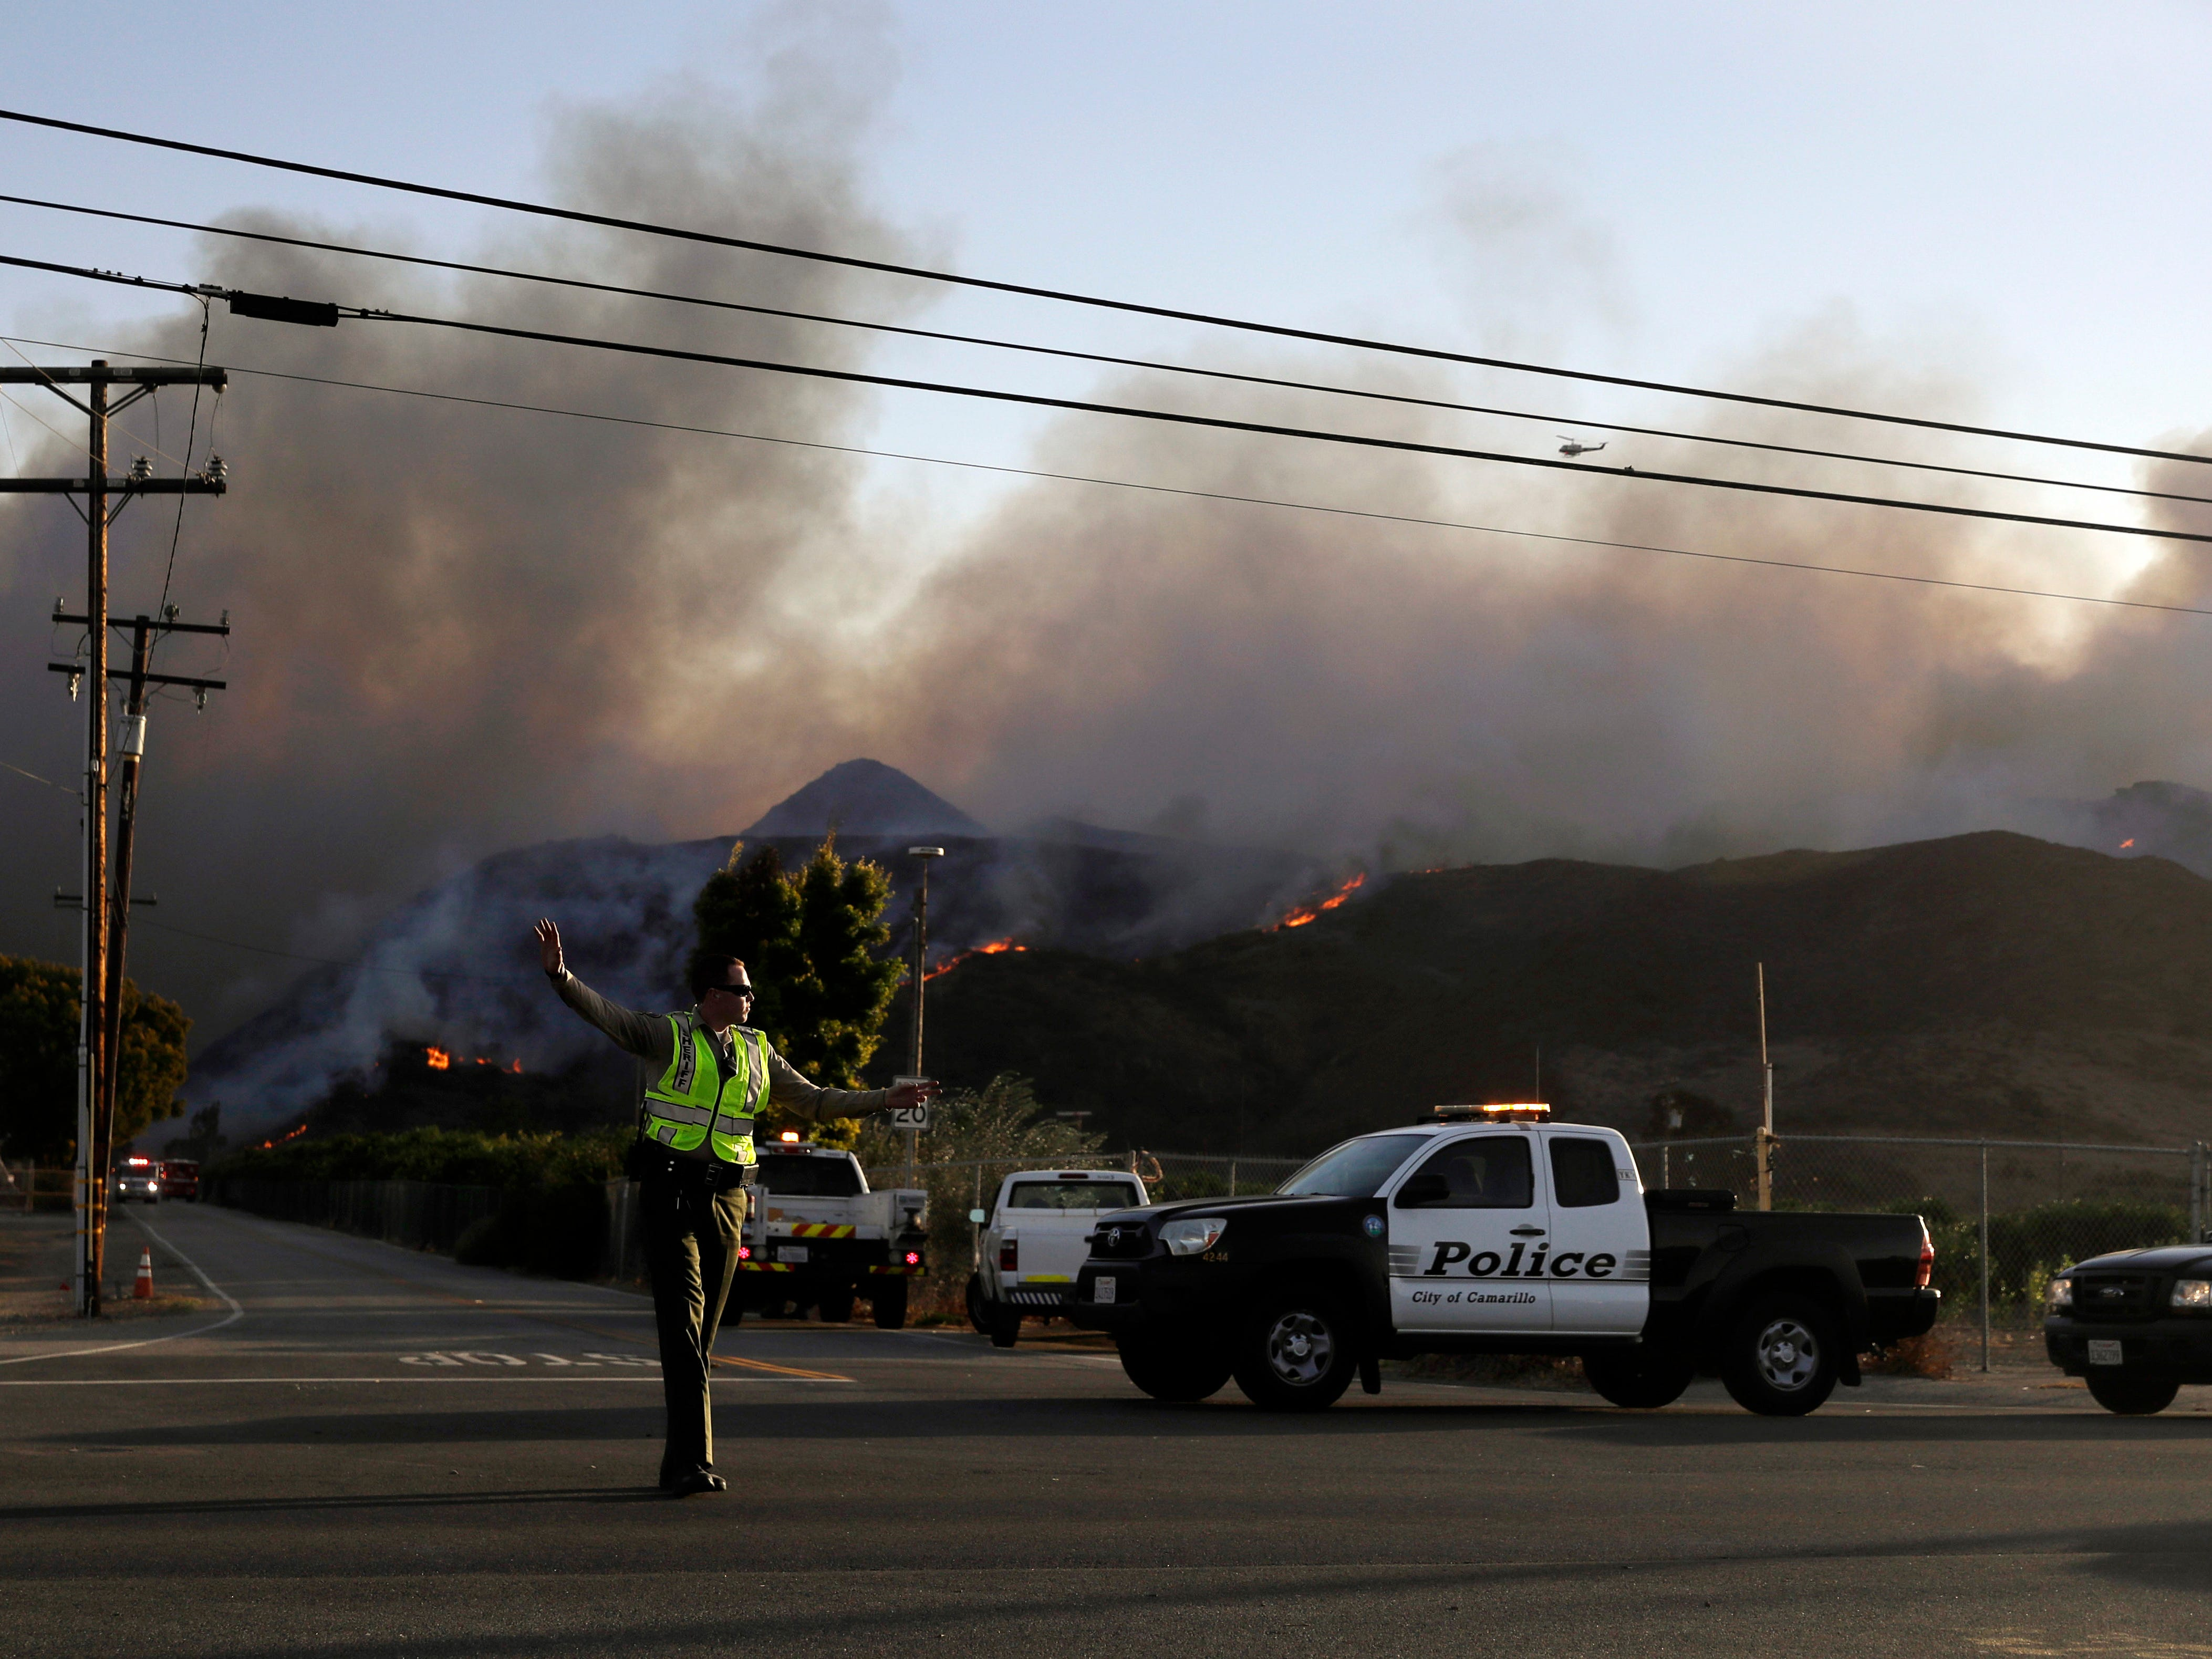 A police officer mans a checkpoint in front of an advancing wildfire on Nov. 8, 2018, near Newbury Park, Calif.